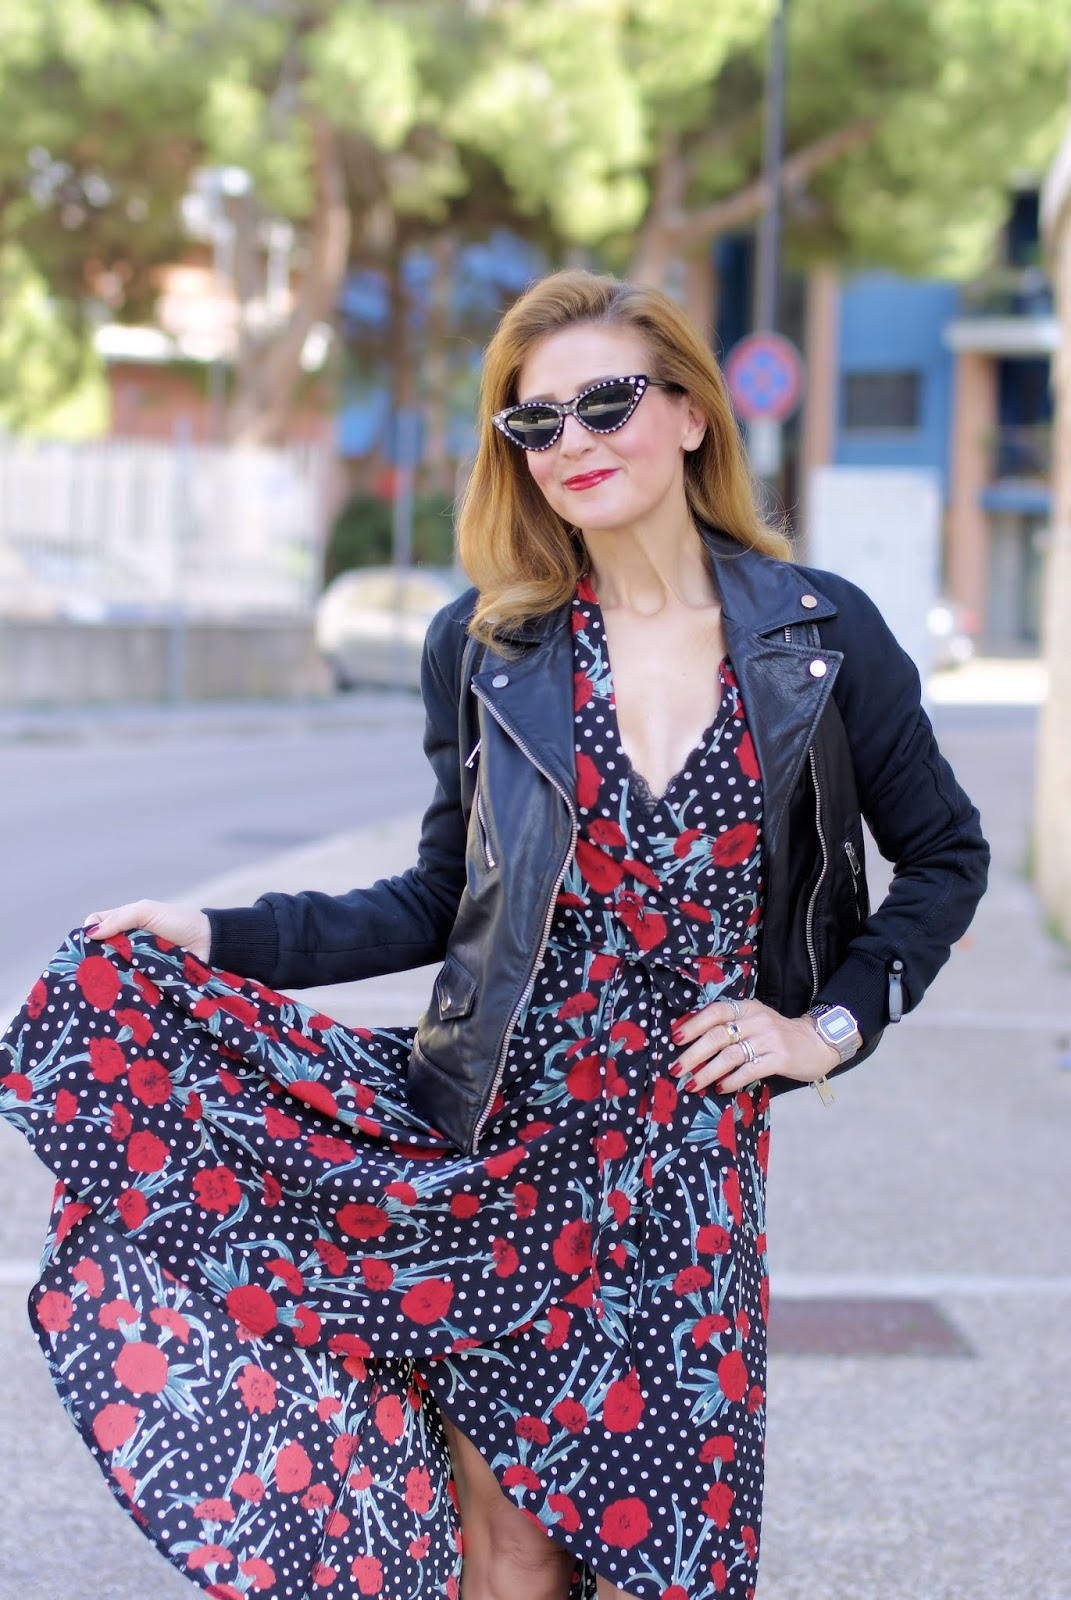 florals and polka dots on Fashion and Cookies fashion blog, fashion blogger style